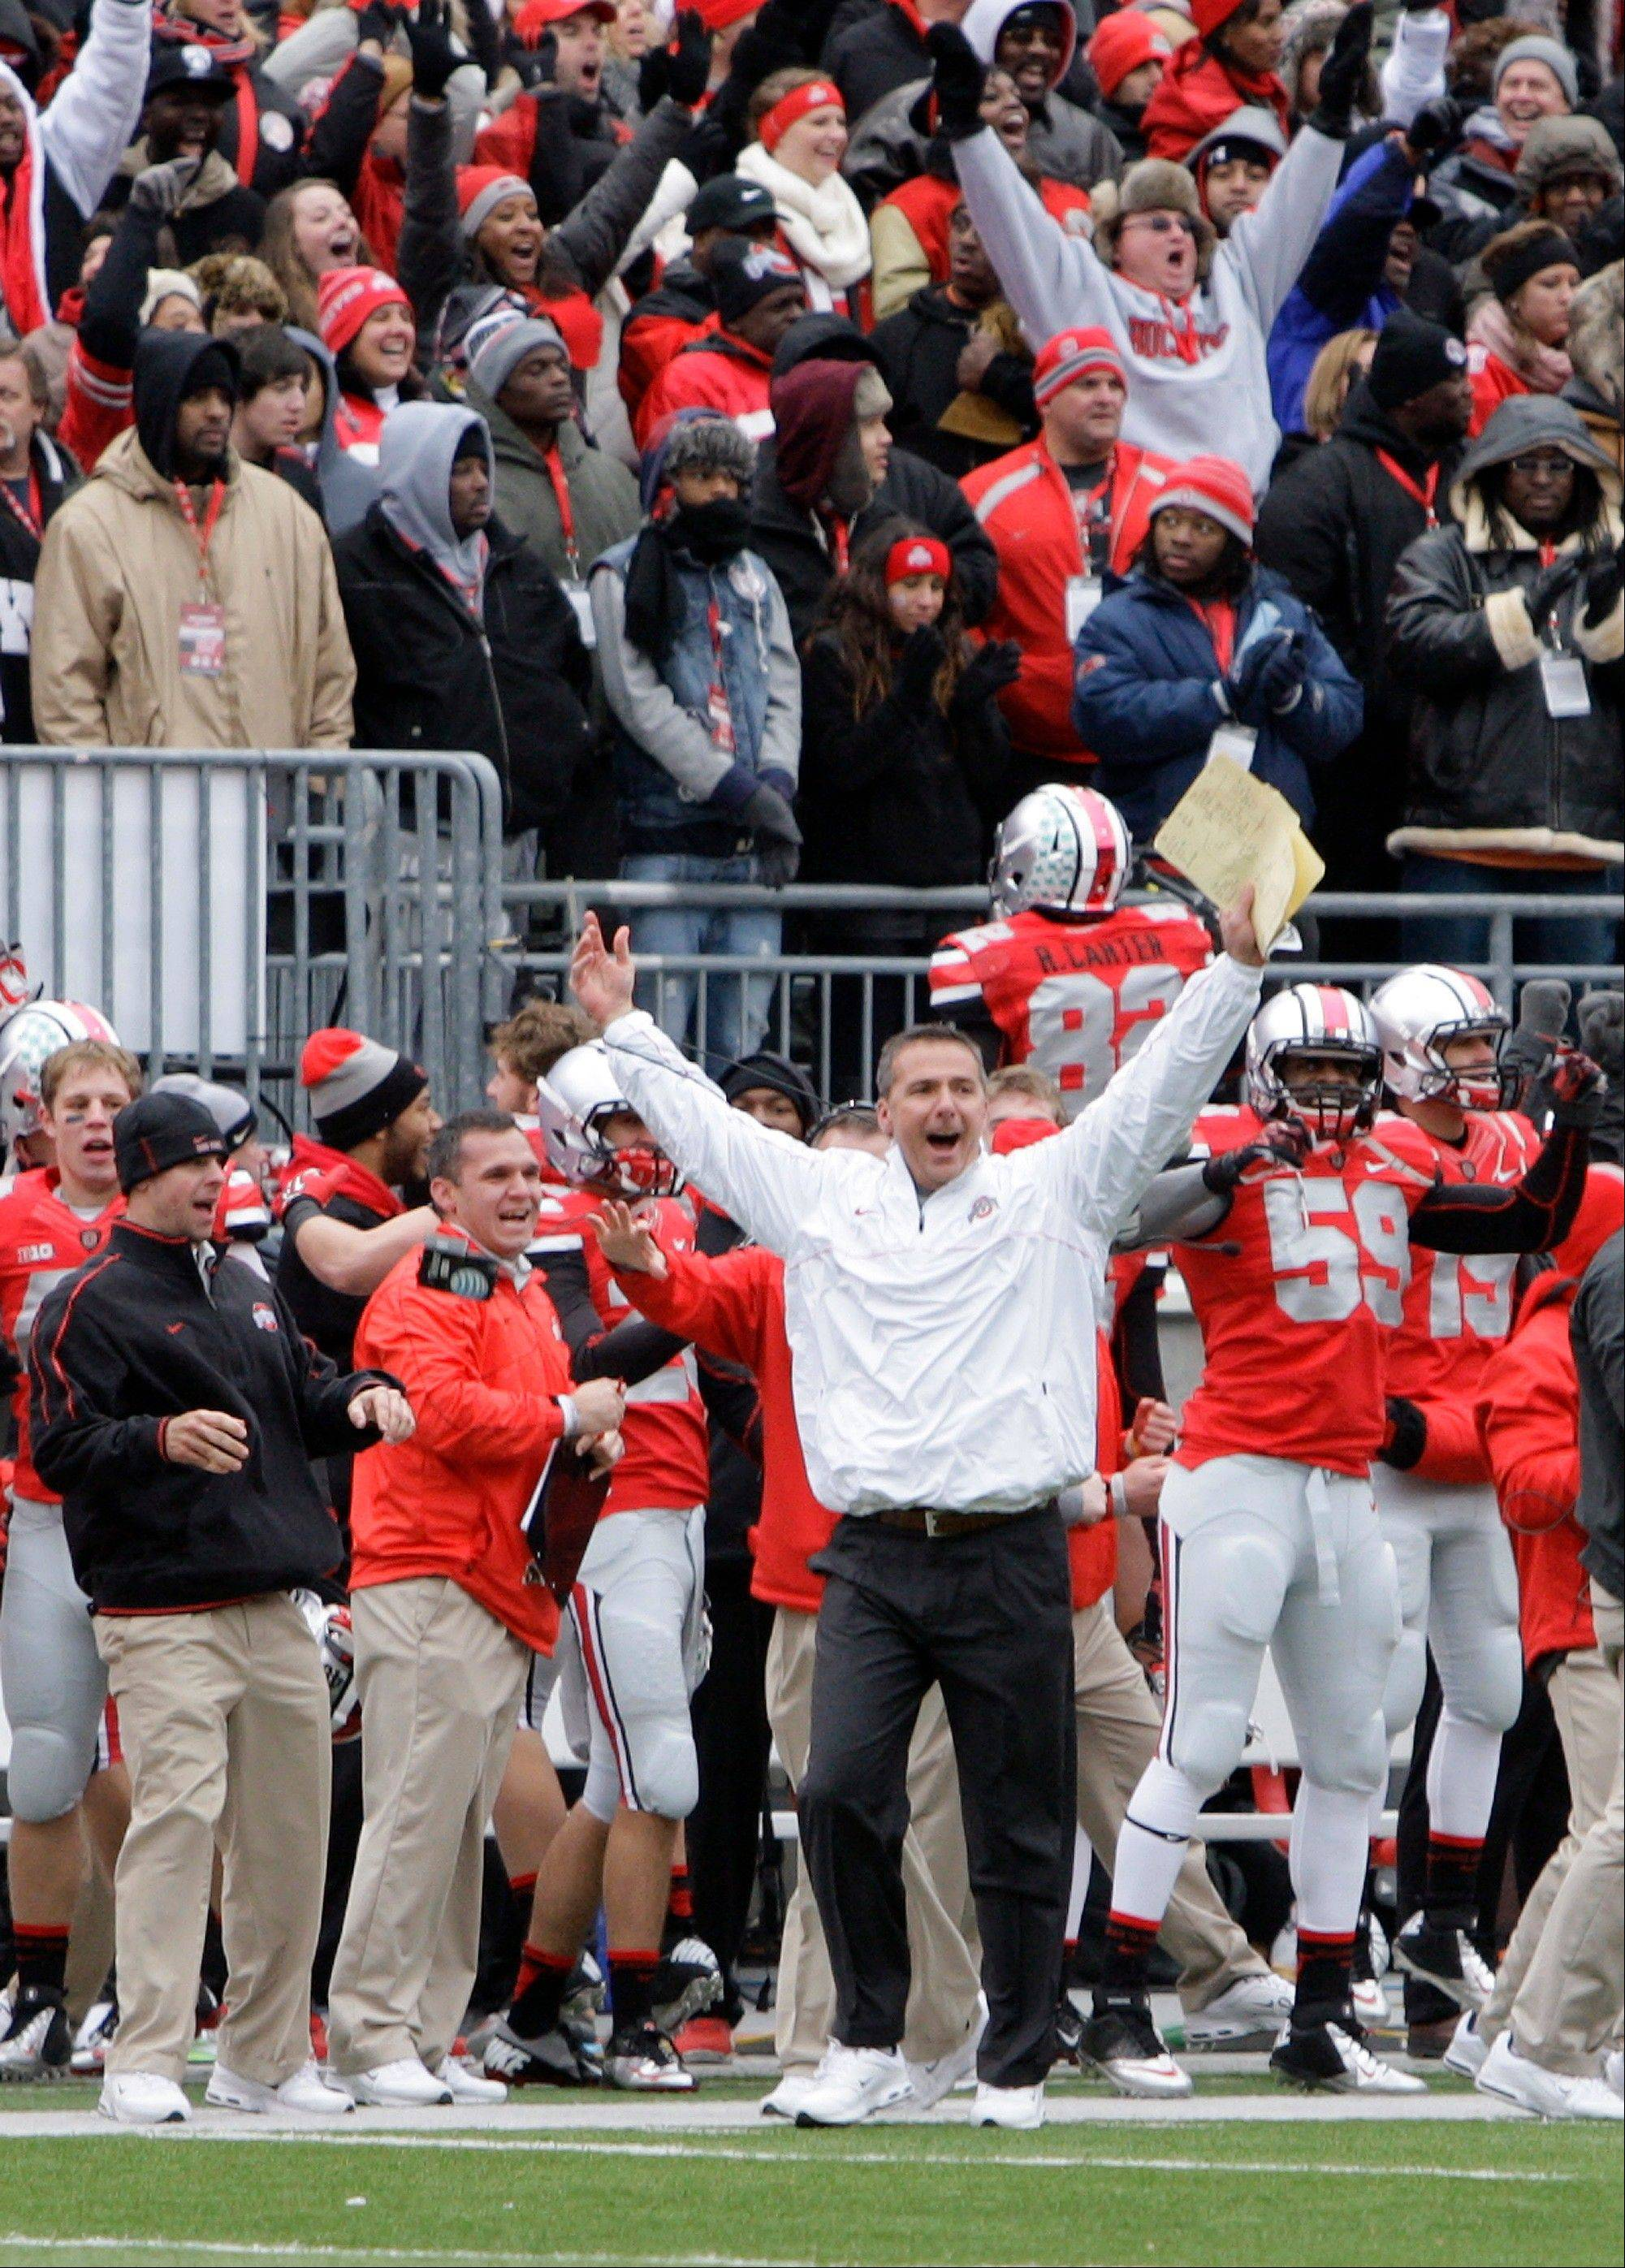 Ohio State head coach Urban Meyer celebrates as time runs off the clock in a 26-21 win over Michigan last year in Columbus, Ohio. It has already been a successful season for No. 3 Ohio State, but as the Buckeyes know, no season is a success if they lose to the Wolverines.